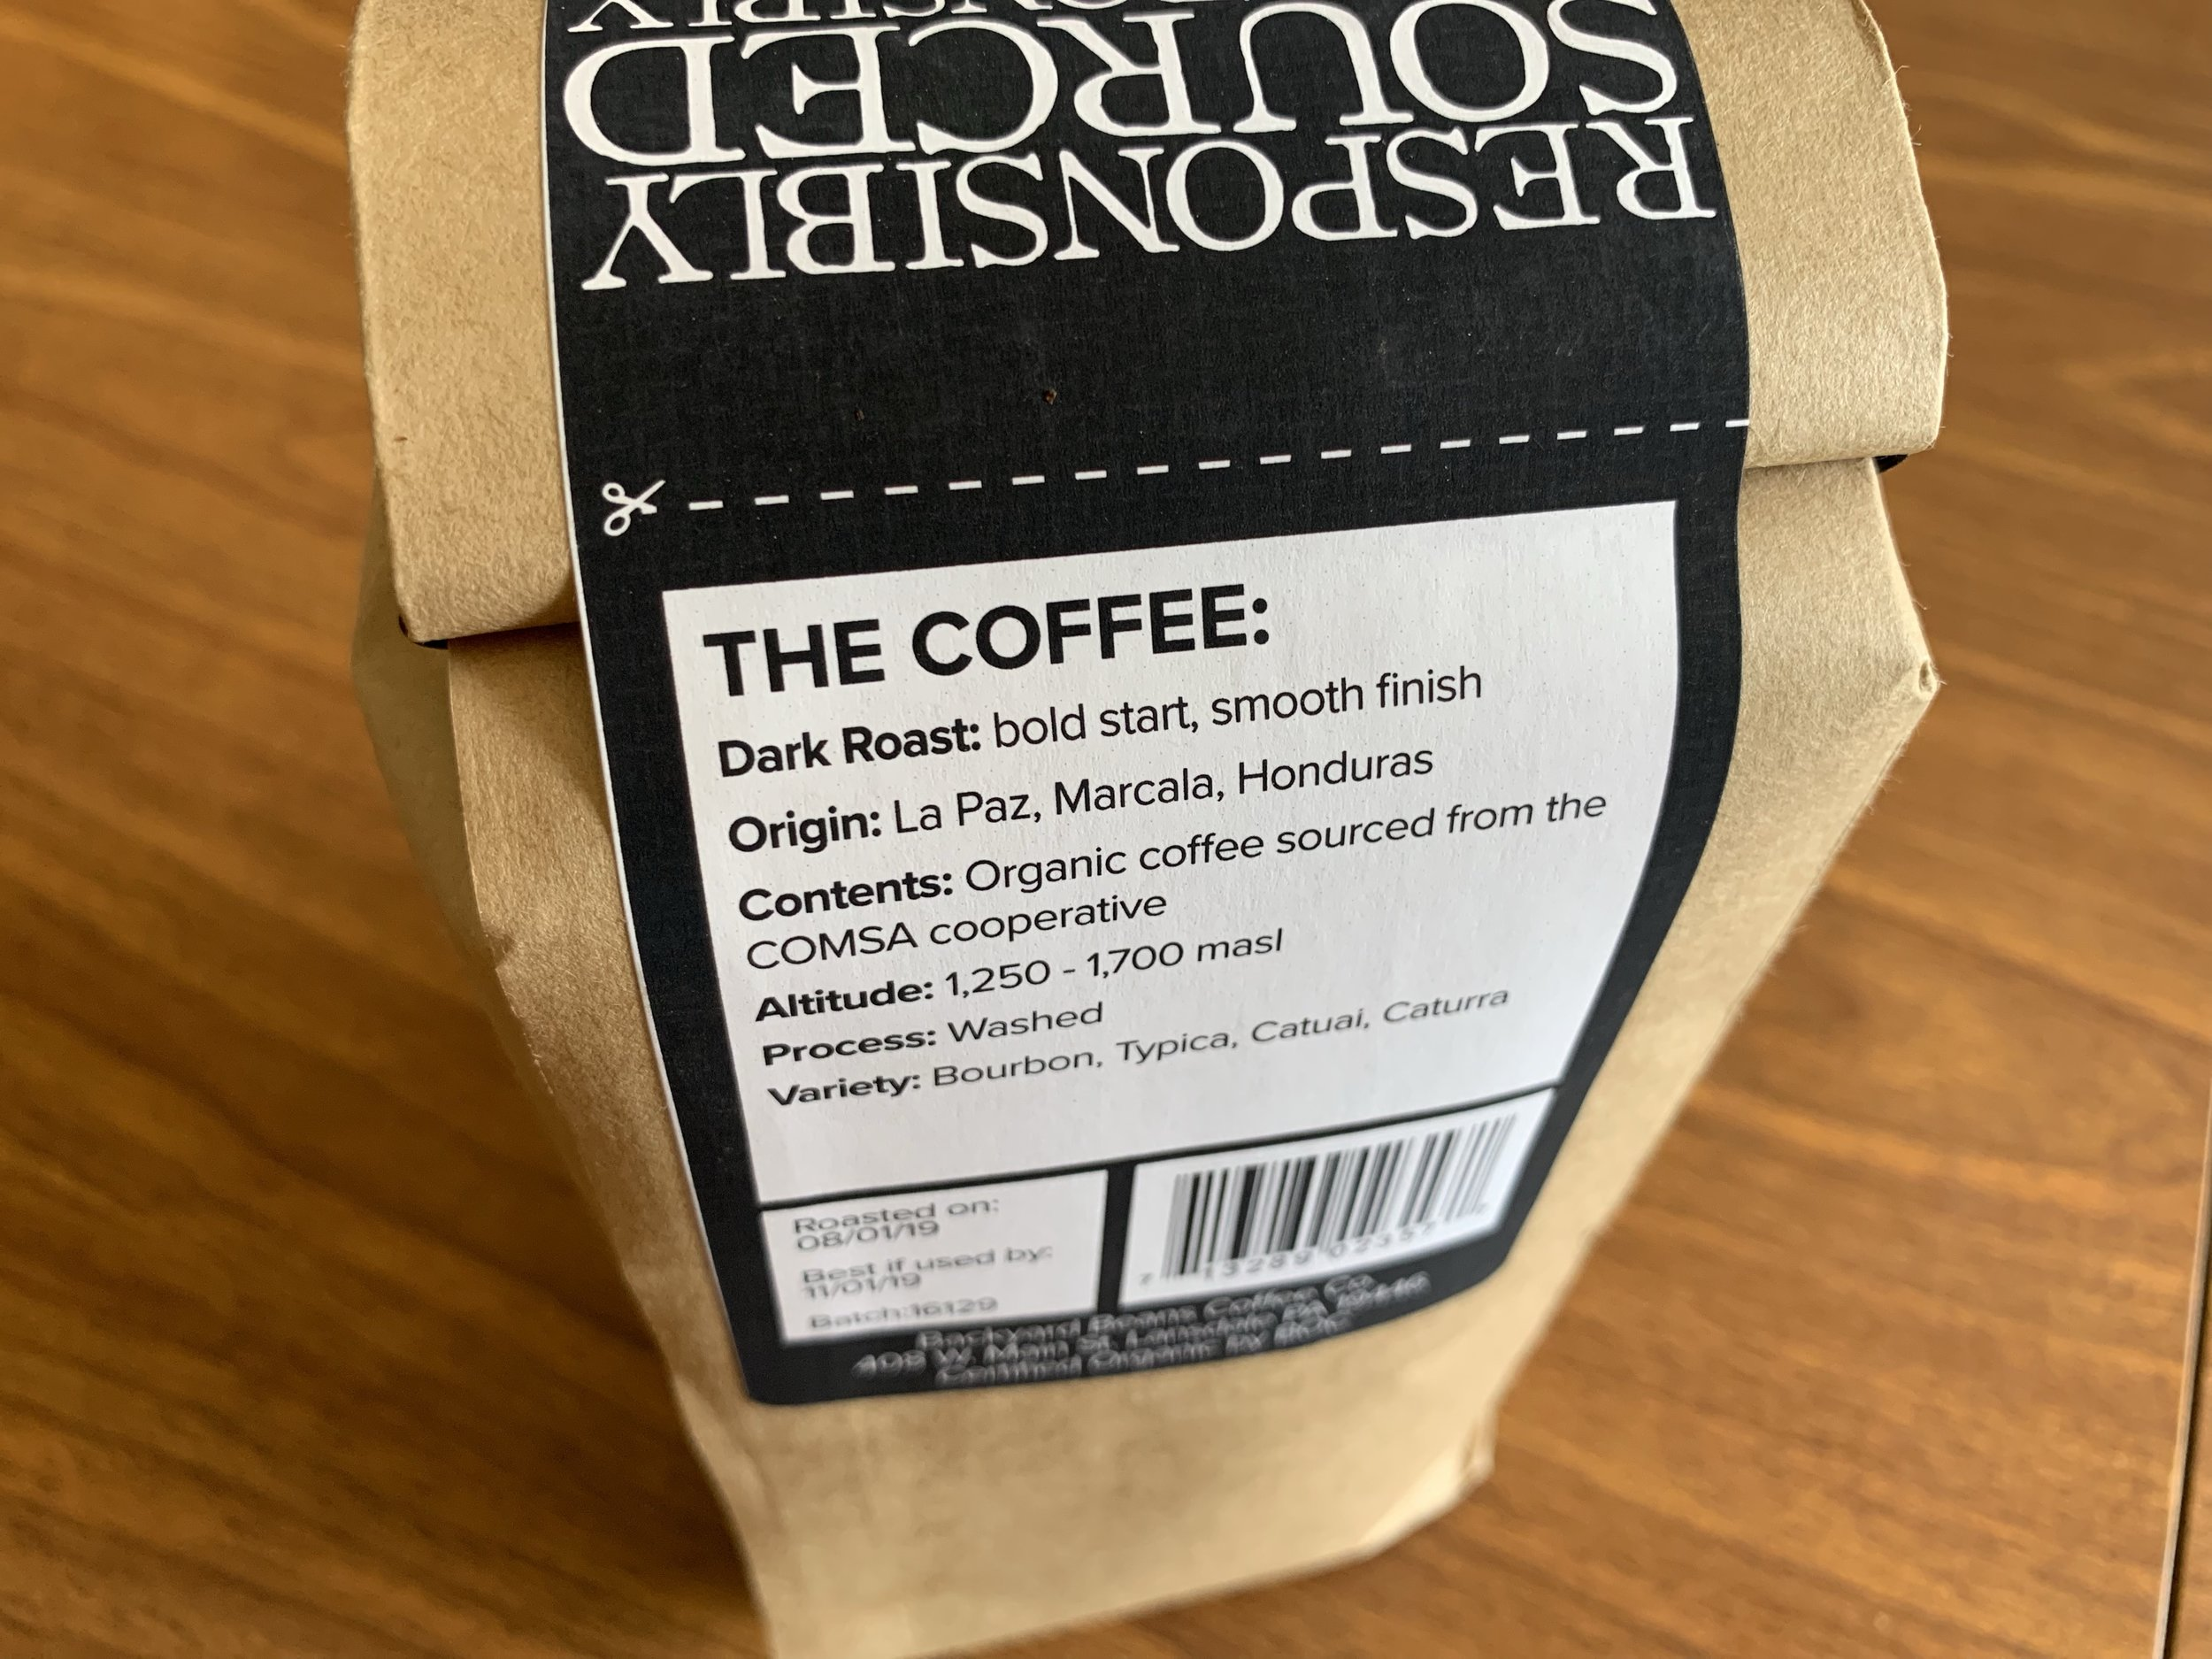 As usual there was an absurd amount of enjoying the freshly roasted bean aroma from the bag. We even got the bag in that sweet spot of the two week window since roasting.